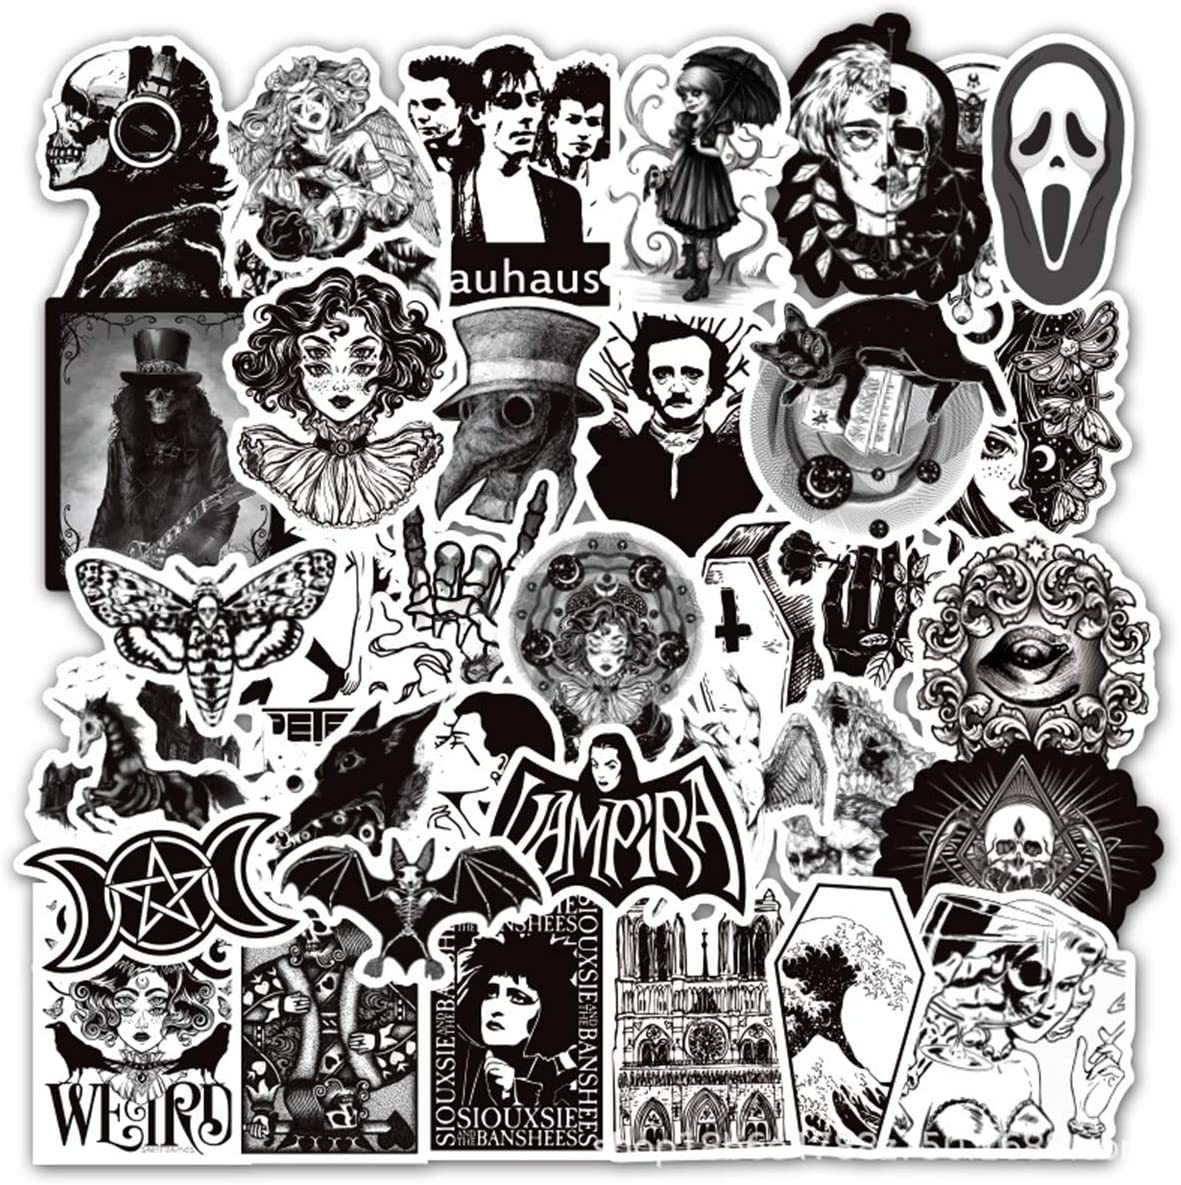 50PCS Gothic Stickers for Water Bottle,Black White Skull Stickers,Waterproof Vinyl Stickers Perfect for Laptop Phone Car Skateboard Water Bottle. /Gothic1